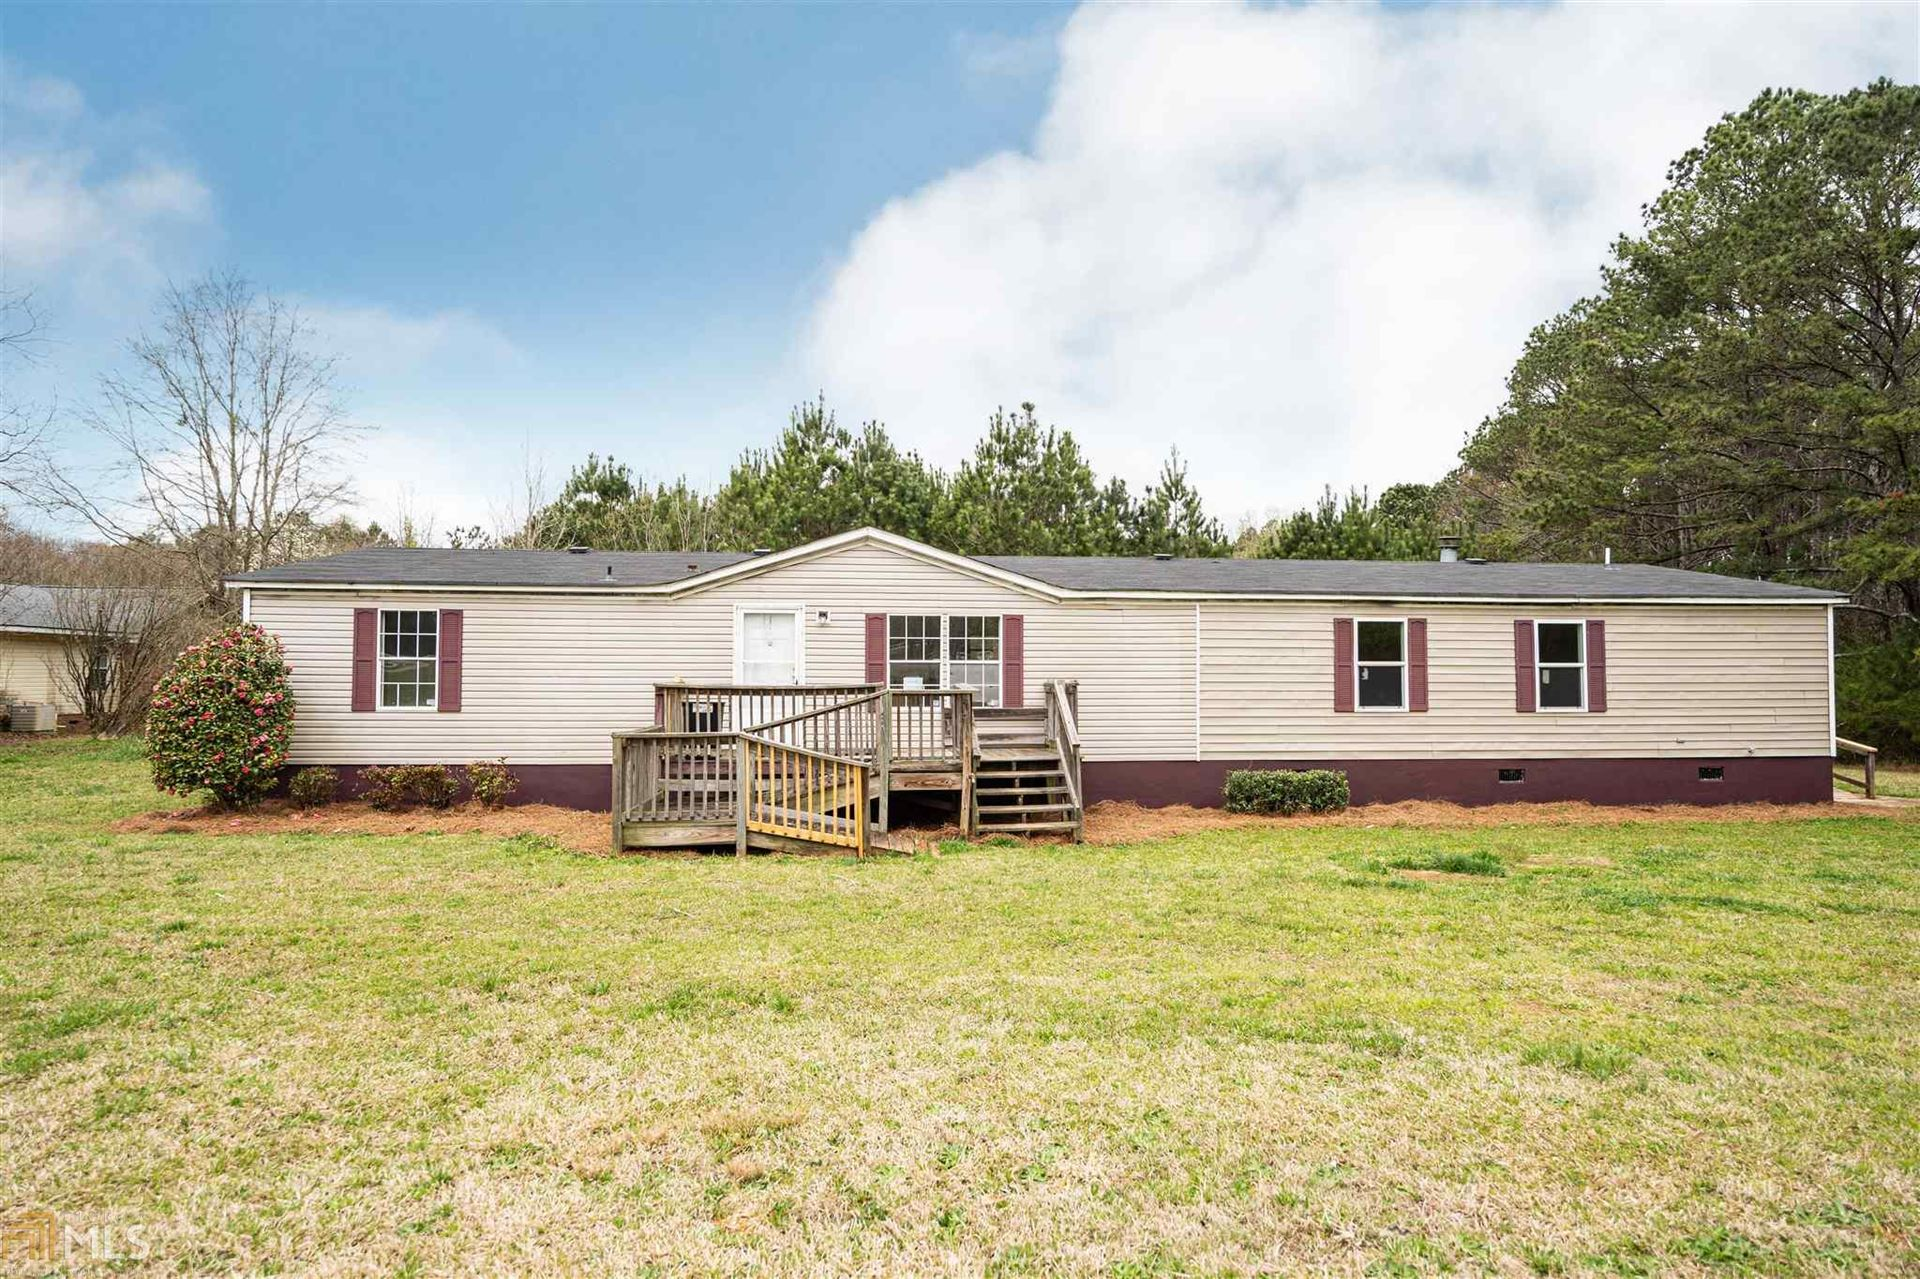 Photo of 1341 Clack Rd, Madison, GA 30650 (MLS # 8952302)